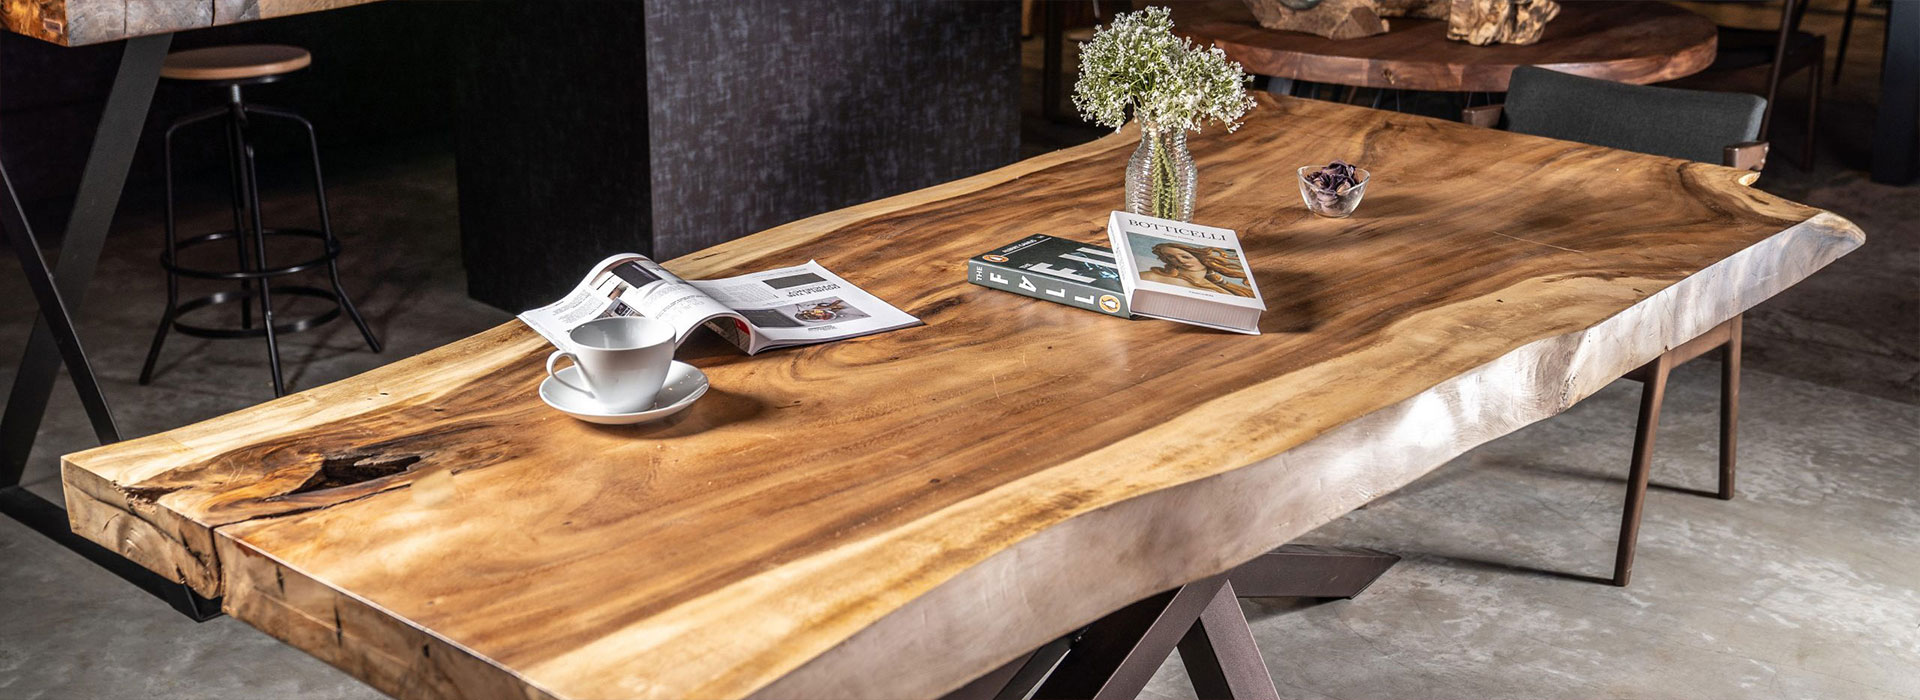 How to Care and Clean Your Wood Furniture